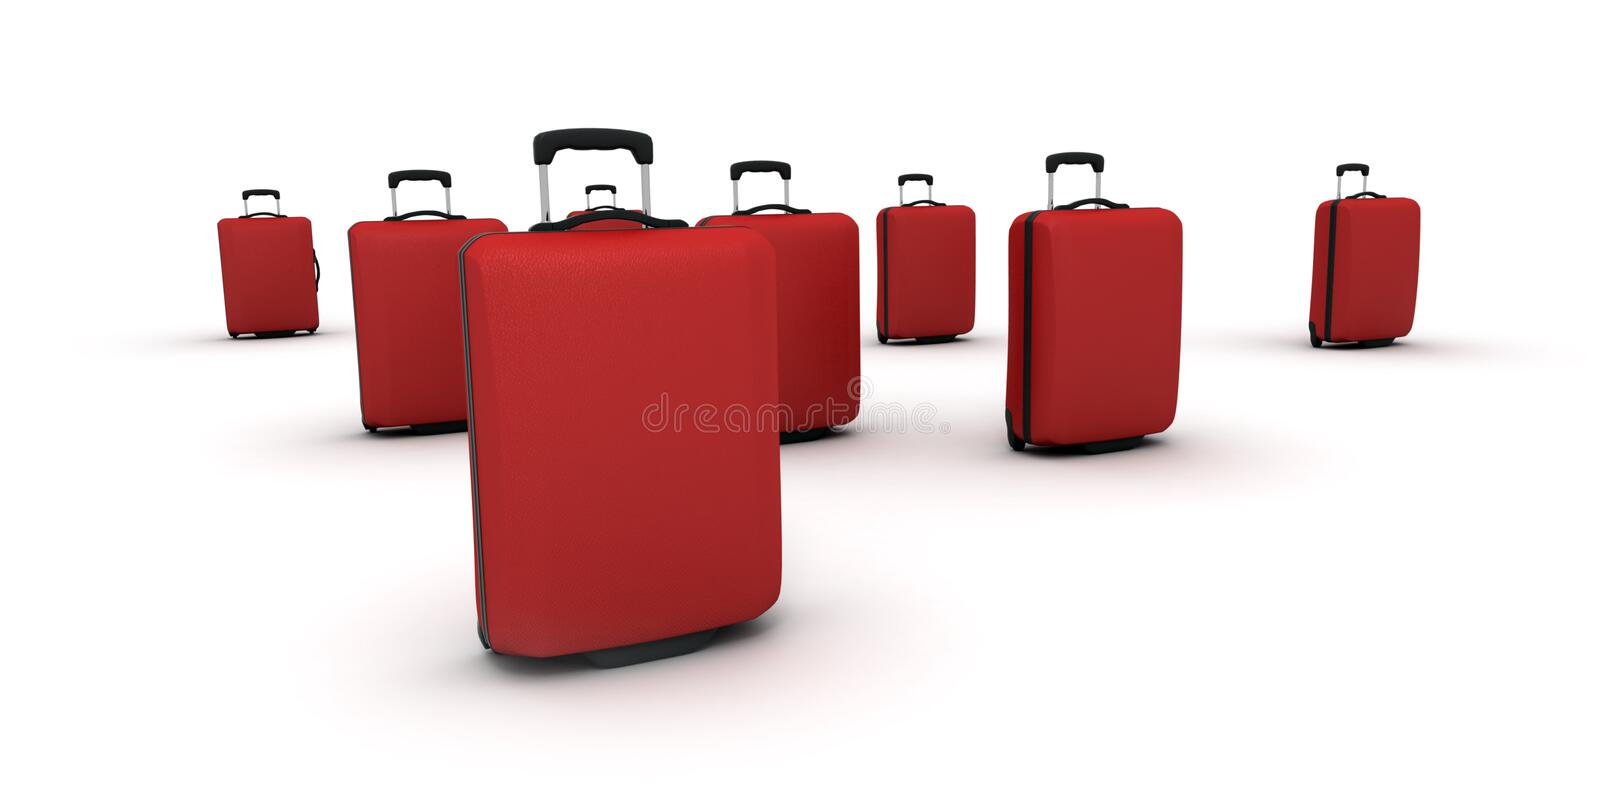 Download Red trolley suitcases stock illustration. Image of tourism - 5463920